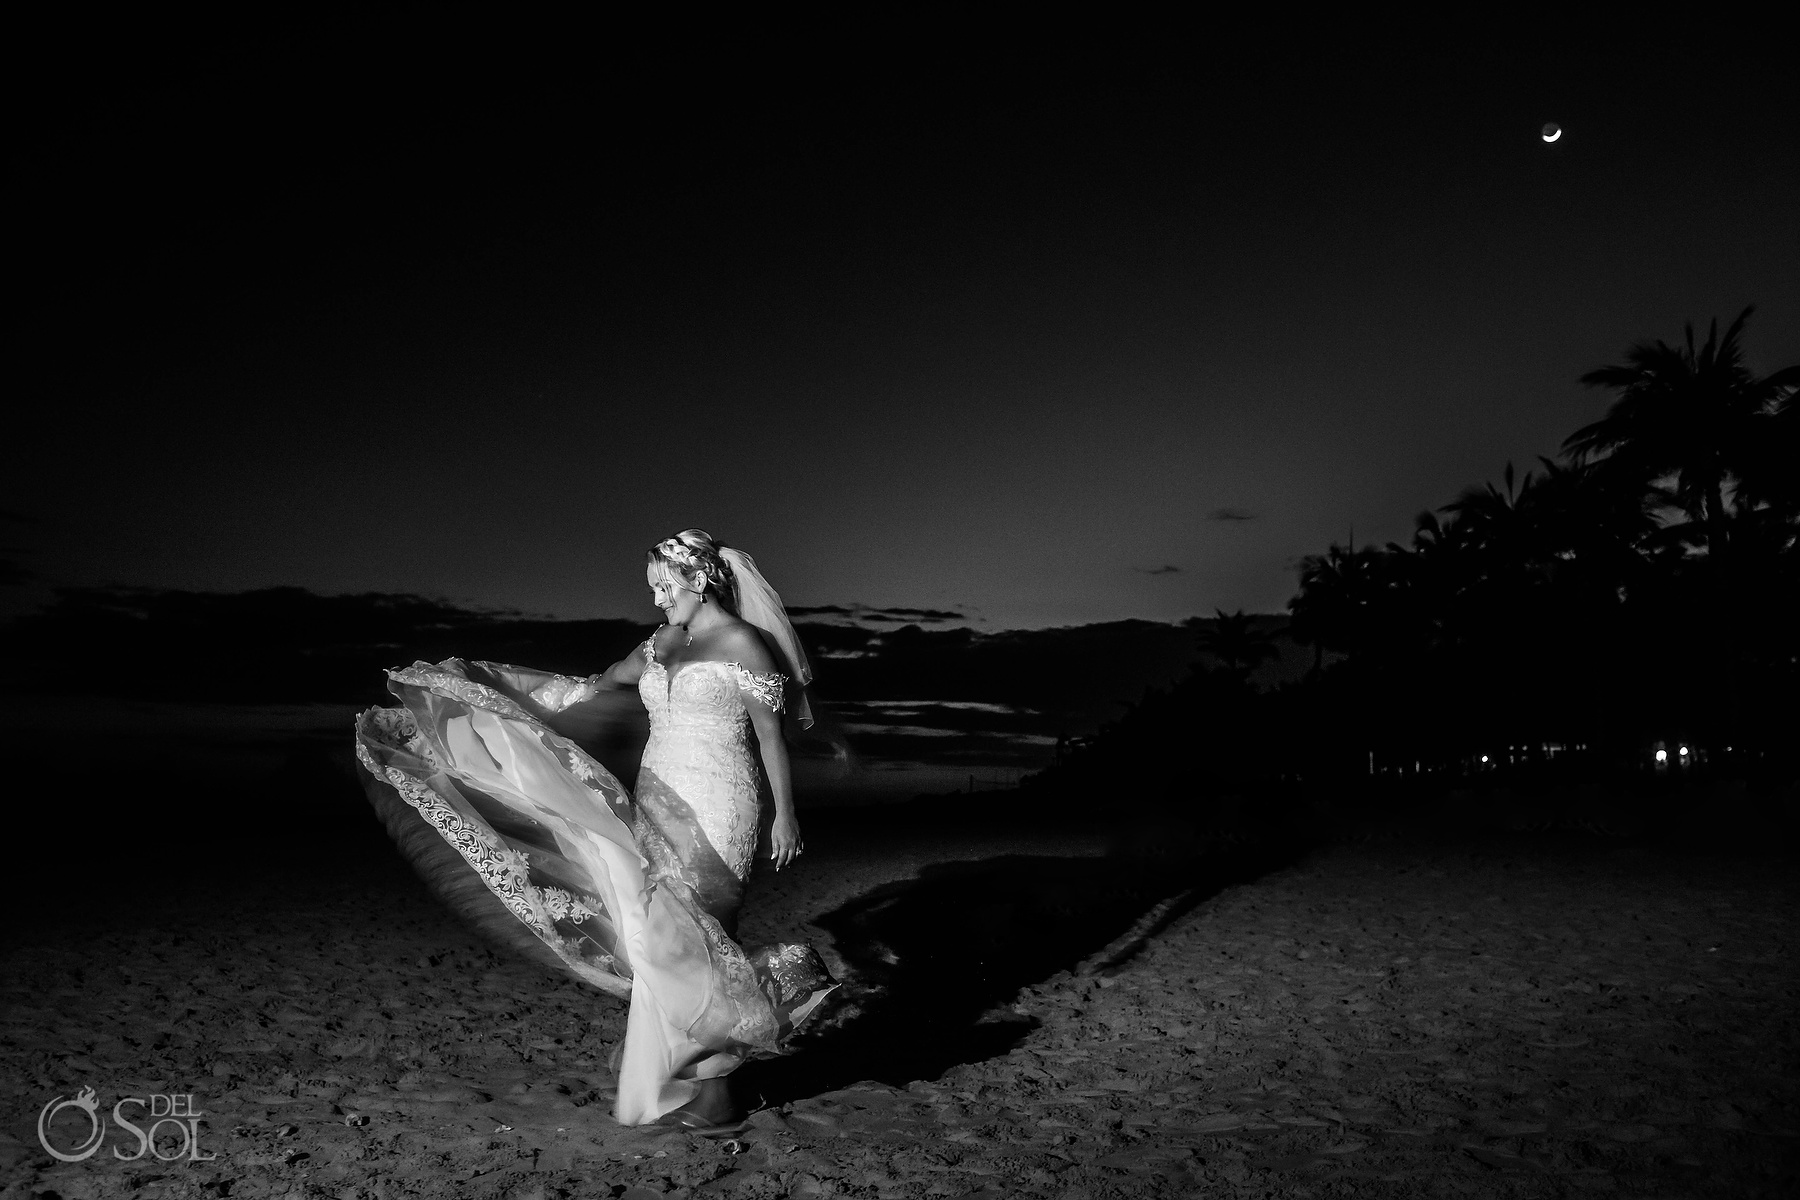 Bride beach night photoshoot with moon at Riu Palace Mexico Wedding Photographer